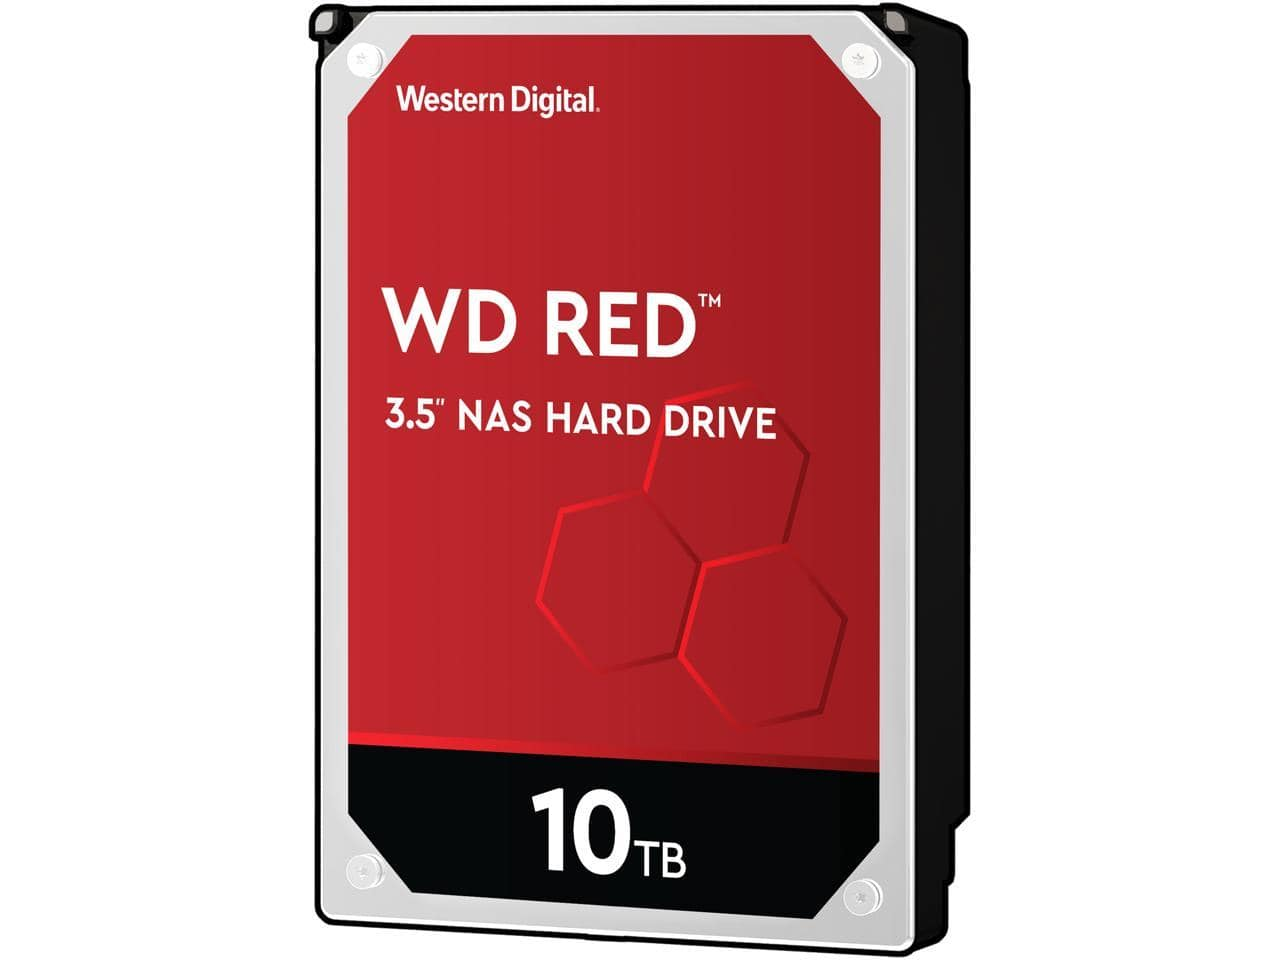 WD red 10tb Hard drive: $ 230 At Newegg. $230